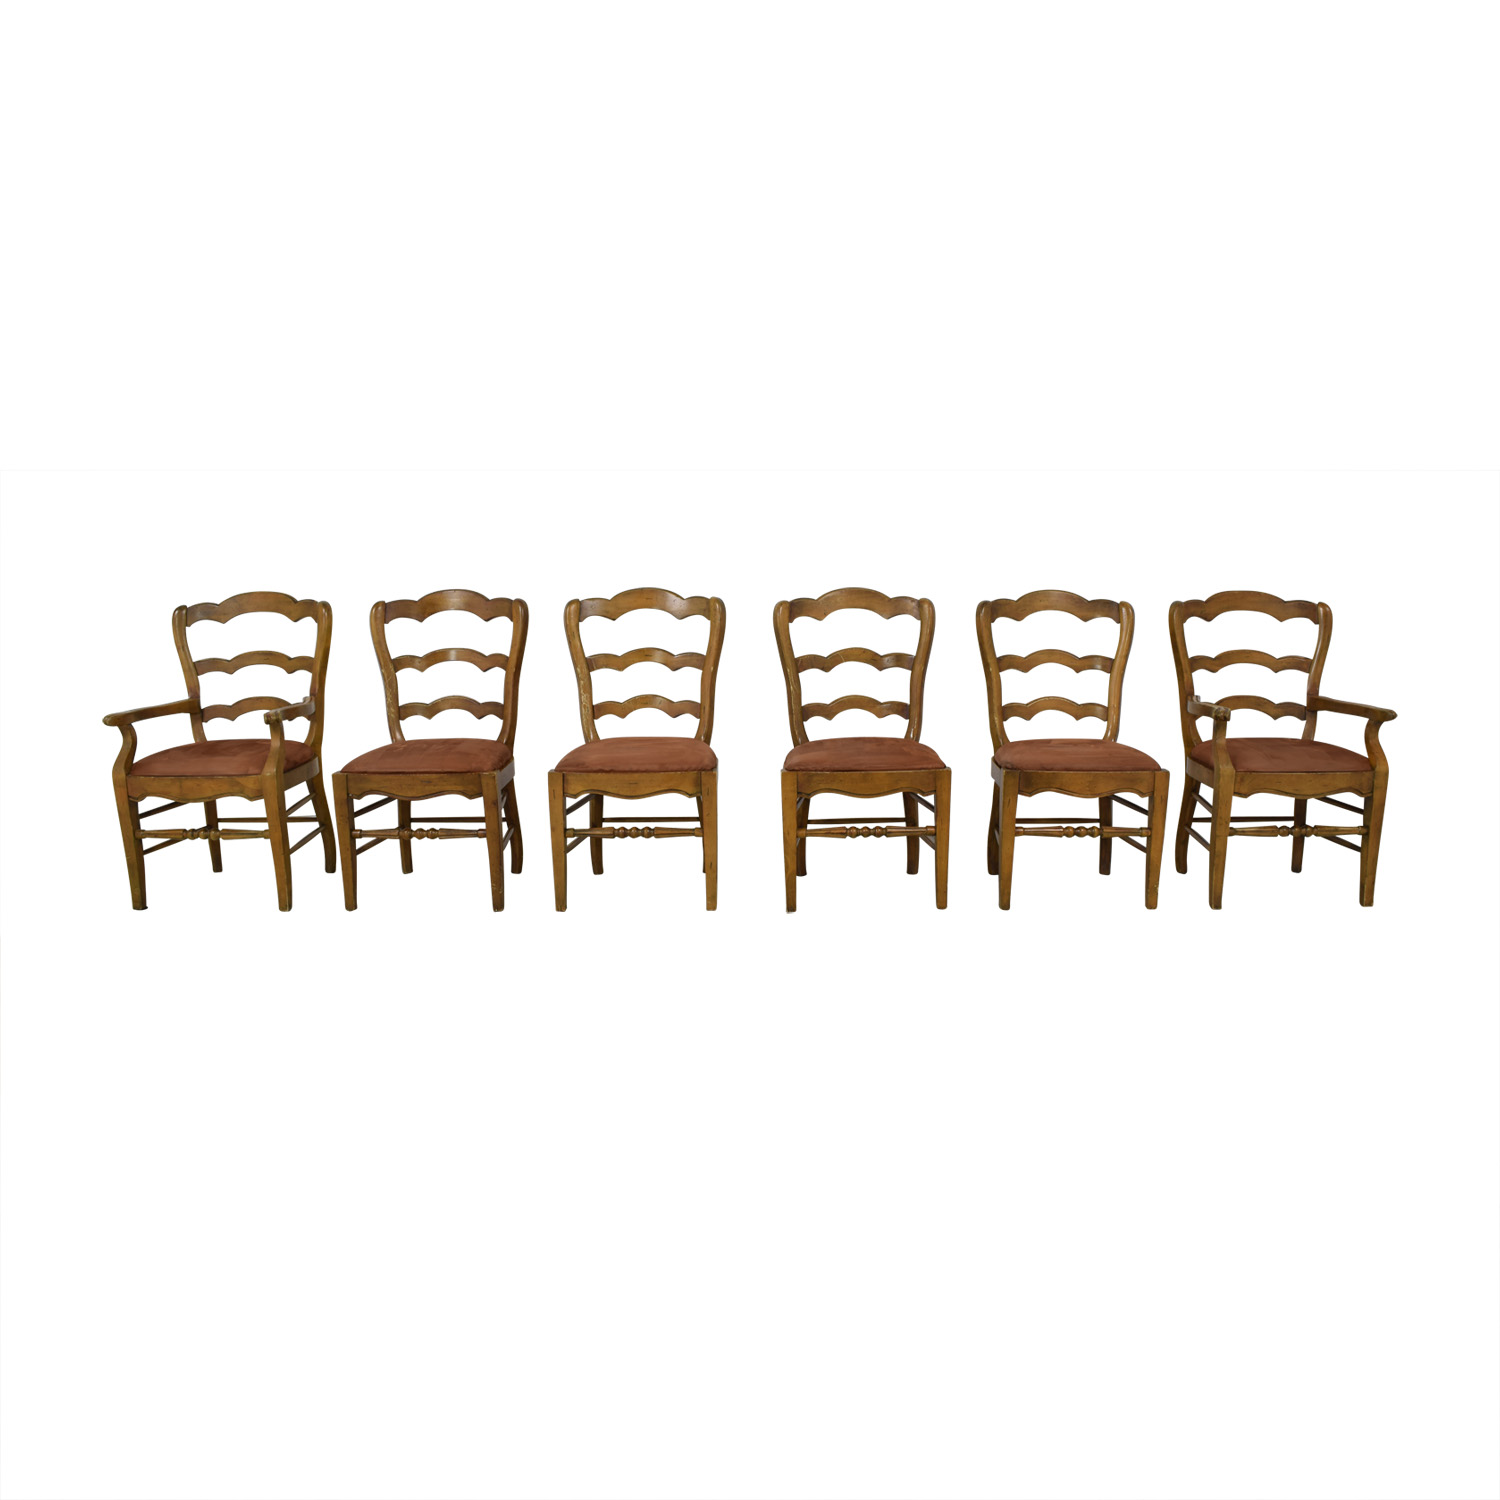 Ralph Lauren Home Ralph Lauren Dining Chairs for sale